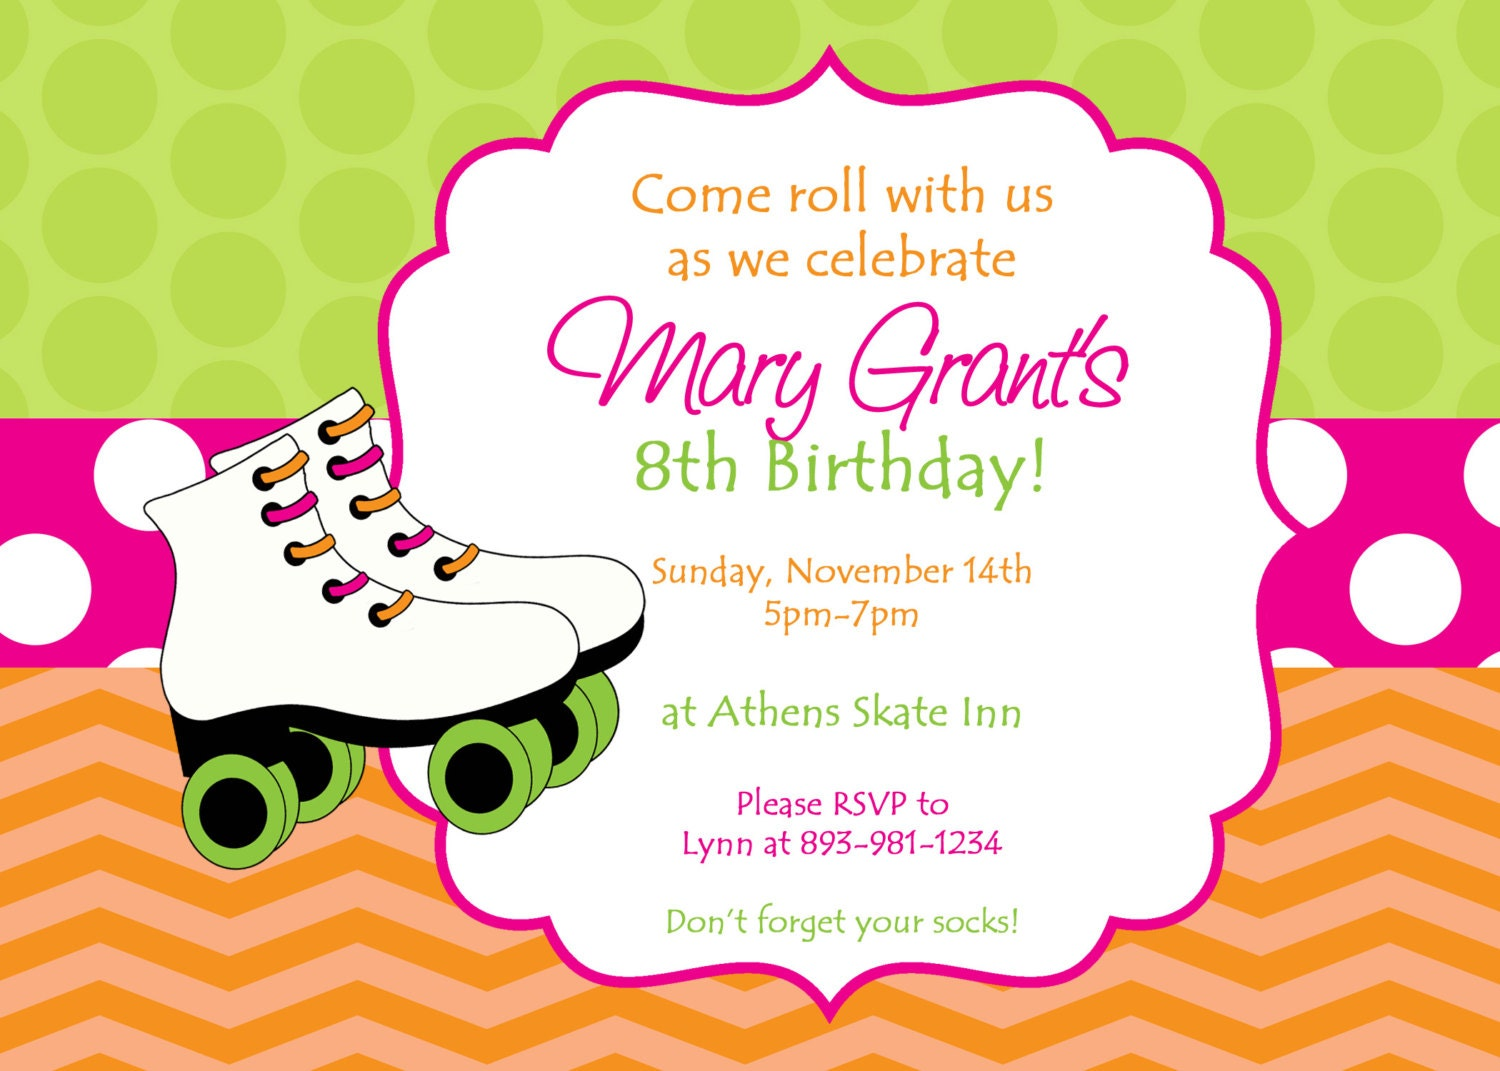 Skating Party Invitation. Colorful Customized Skate Party